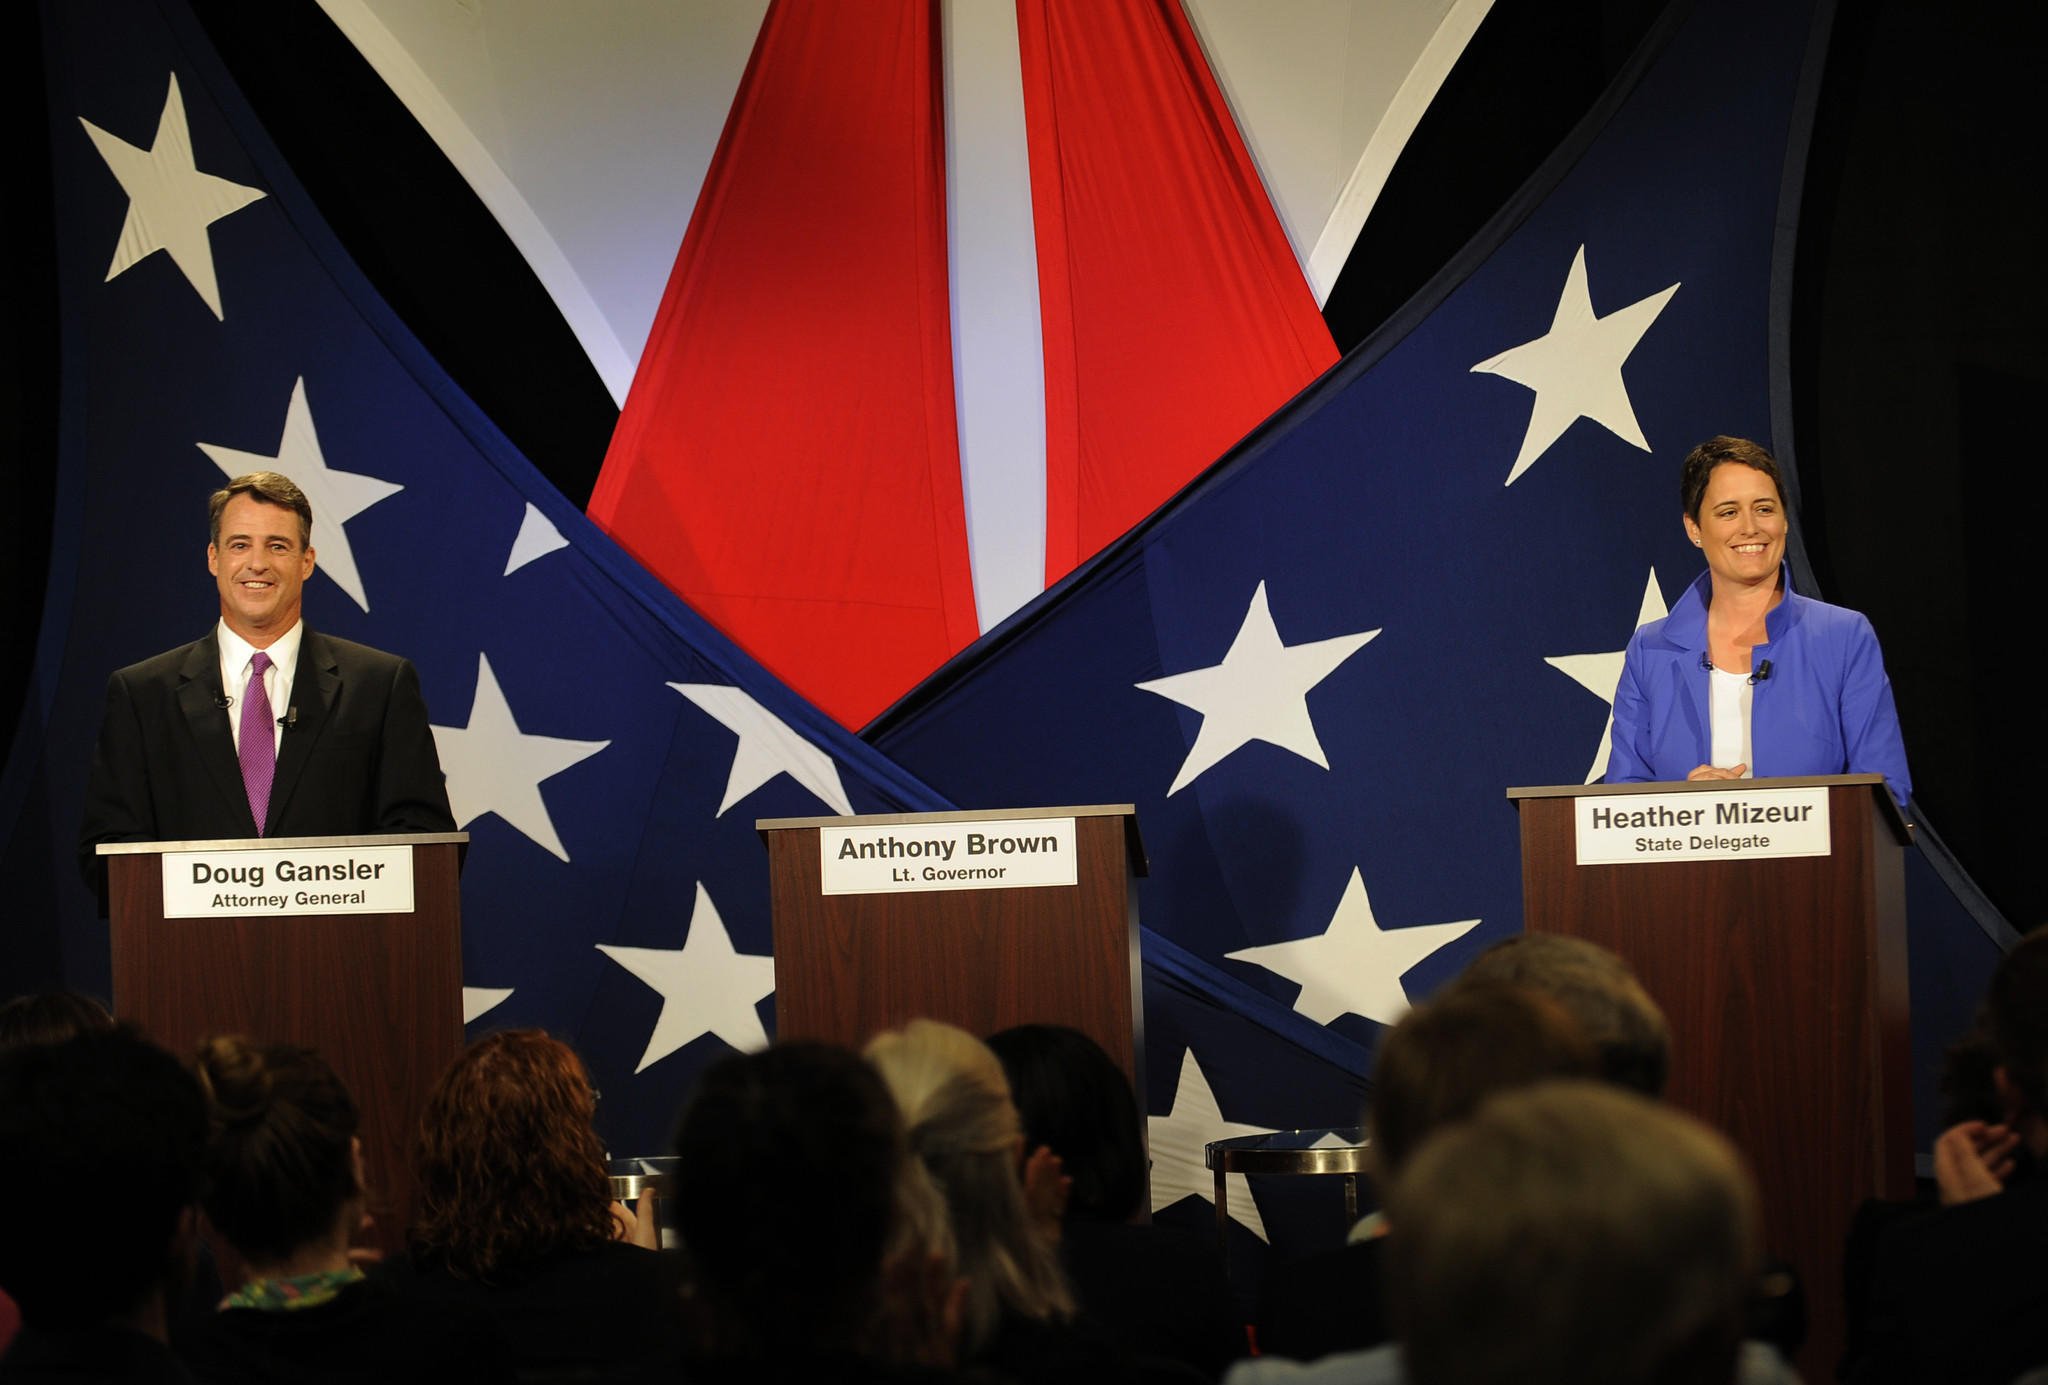 Gubernatorial candidates Attorney General Doug Gansler and state Del. Heather Mizeur debate each other across an empty podium for Lt. Gov. Anthony Brown at WBFF Fox 45 on May 27.